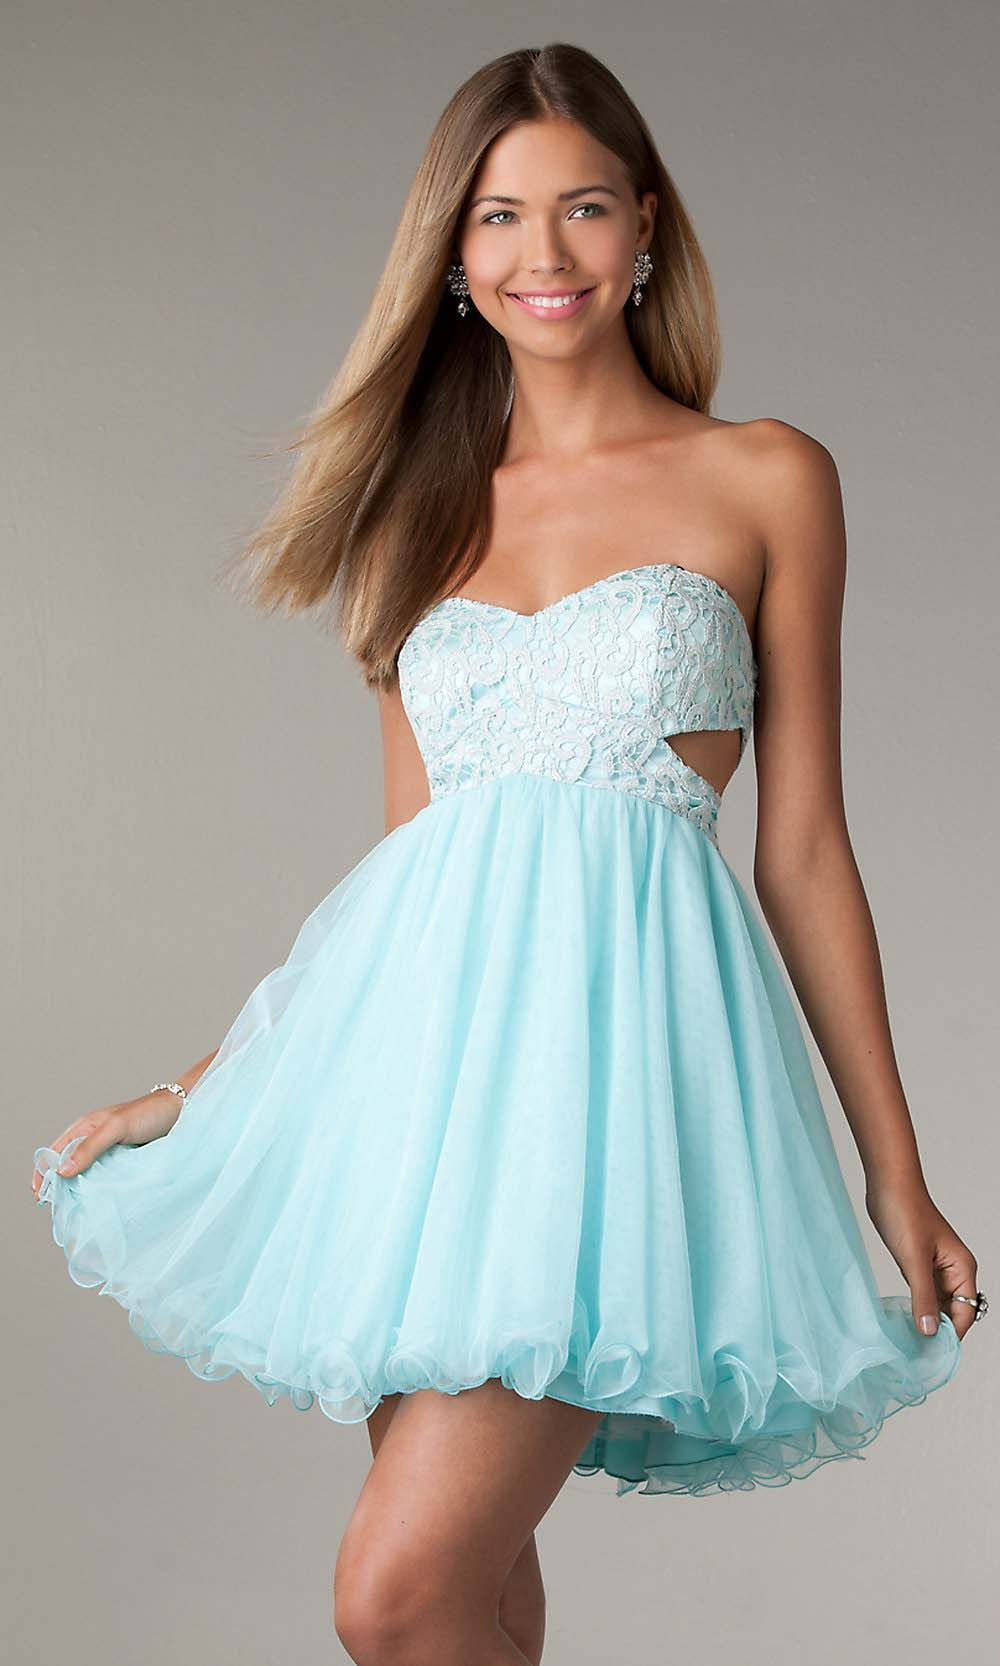 tiffany blue prom dress, junior prom dresses, A line ball gown ...